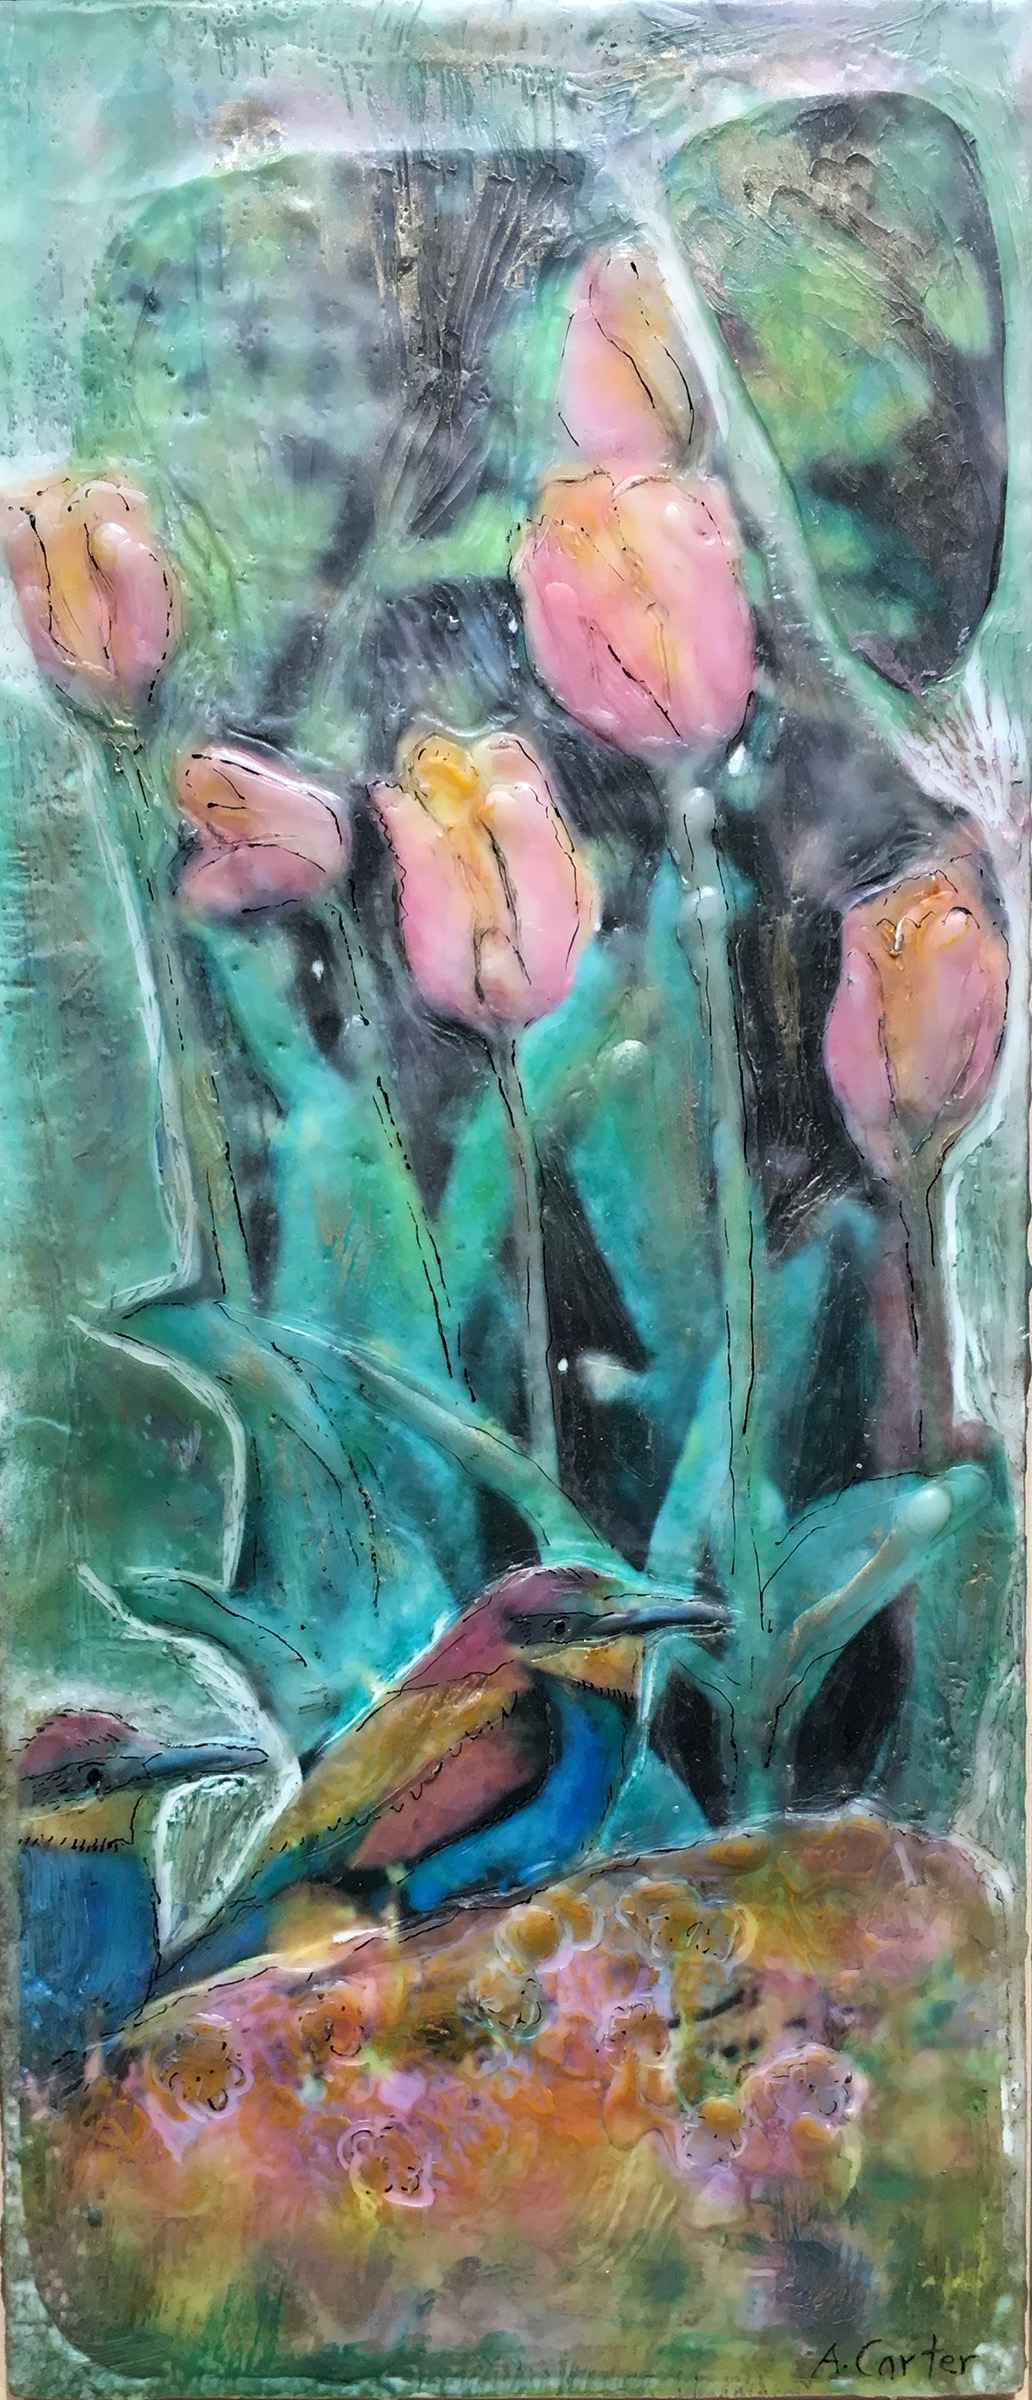 Delighting in the Tul... by  Ann L. Carter - Masterpiece Online